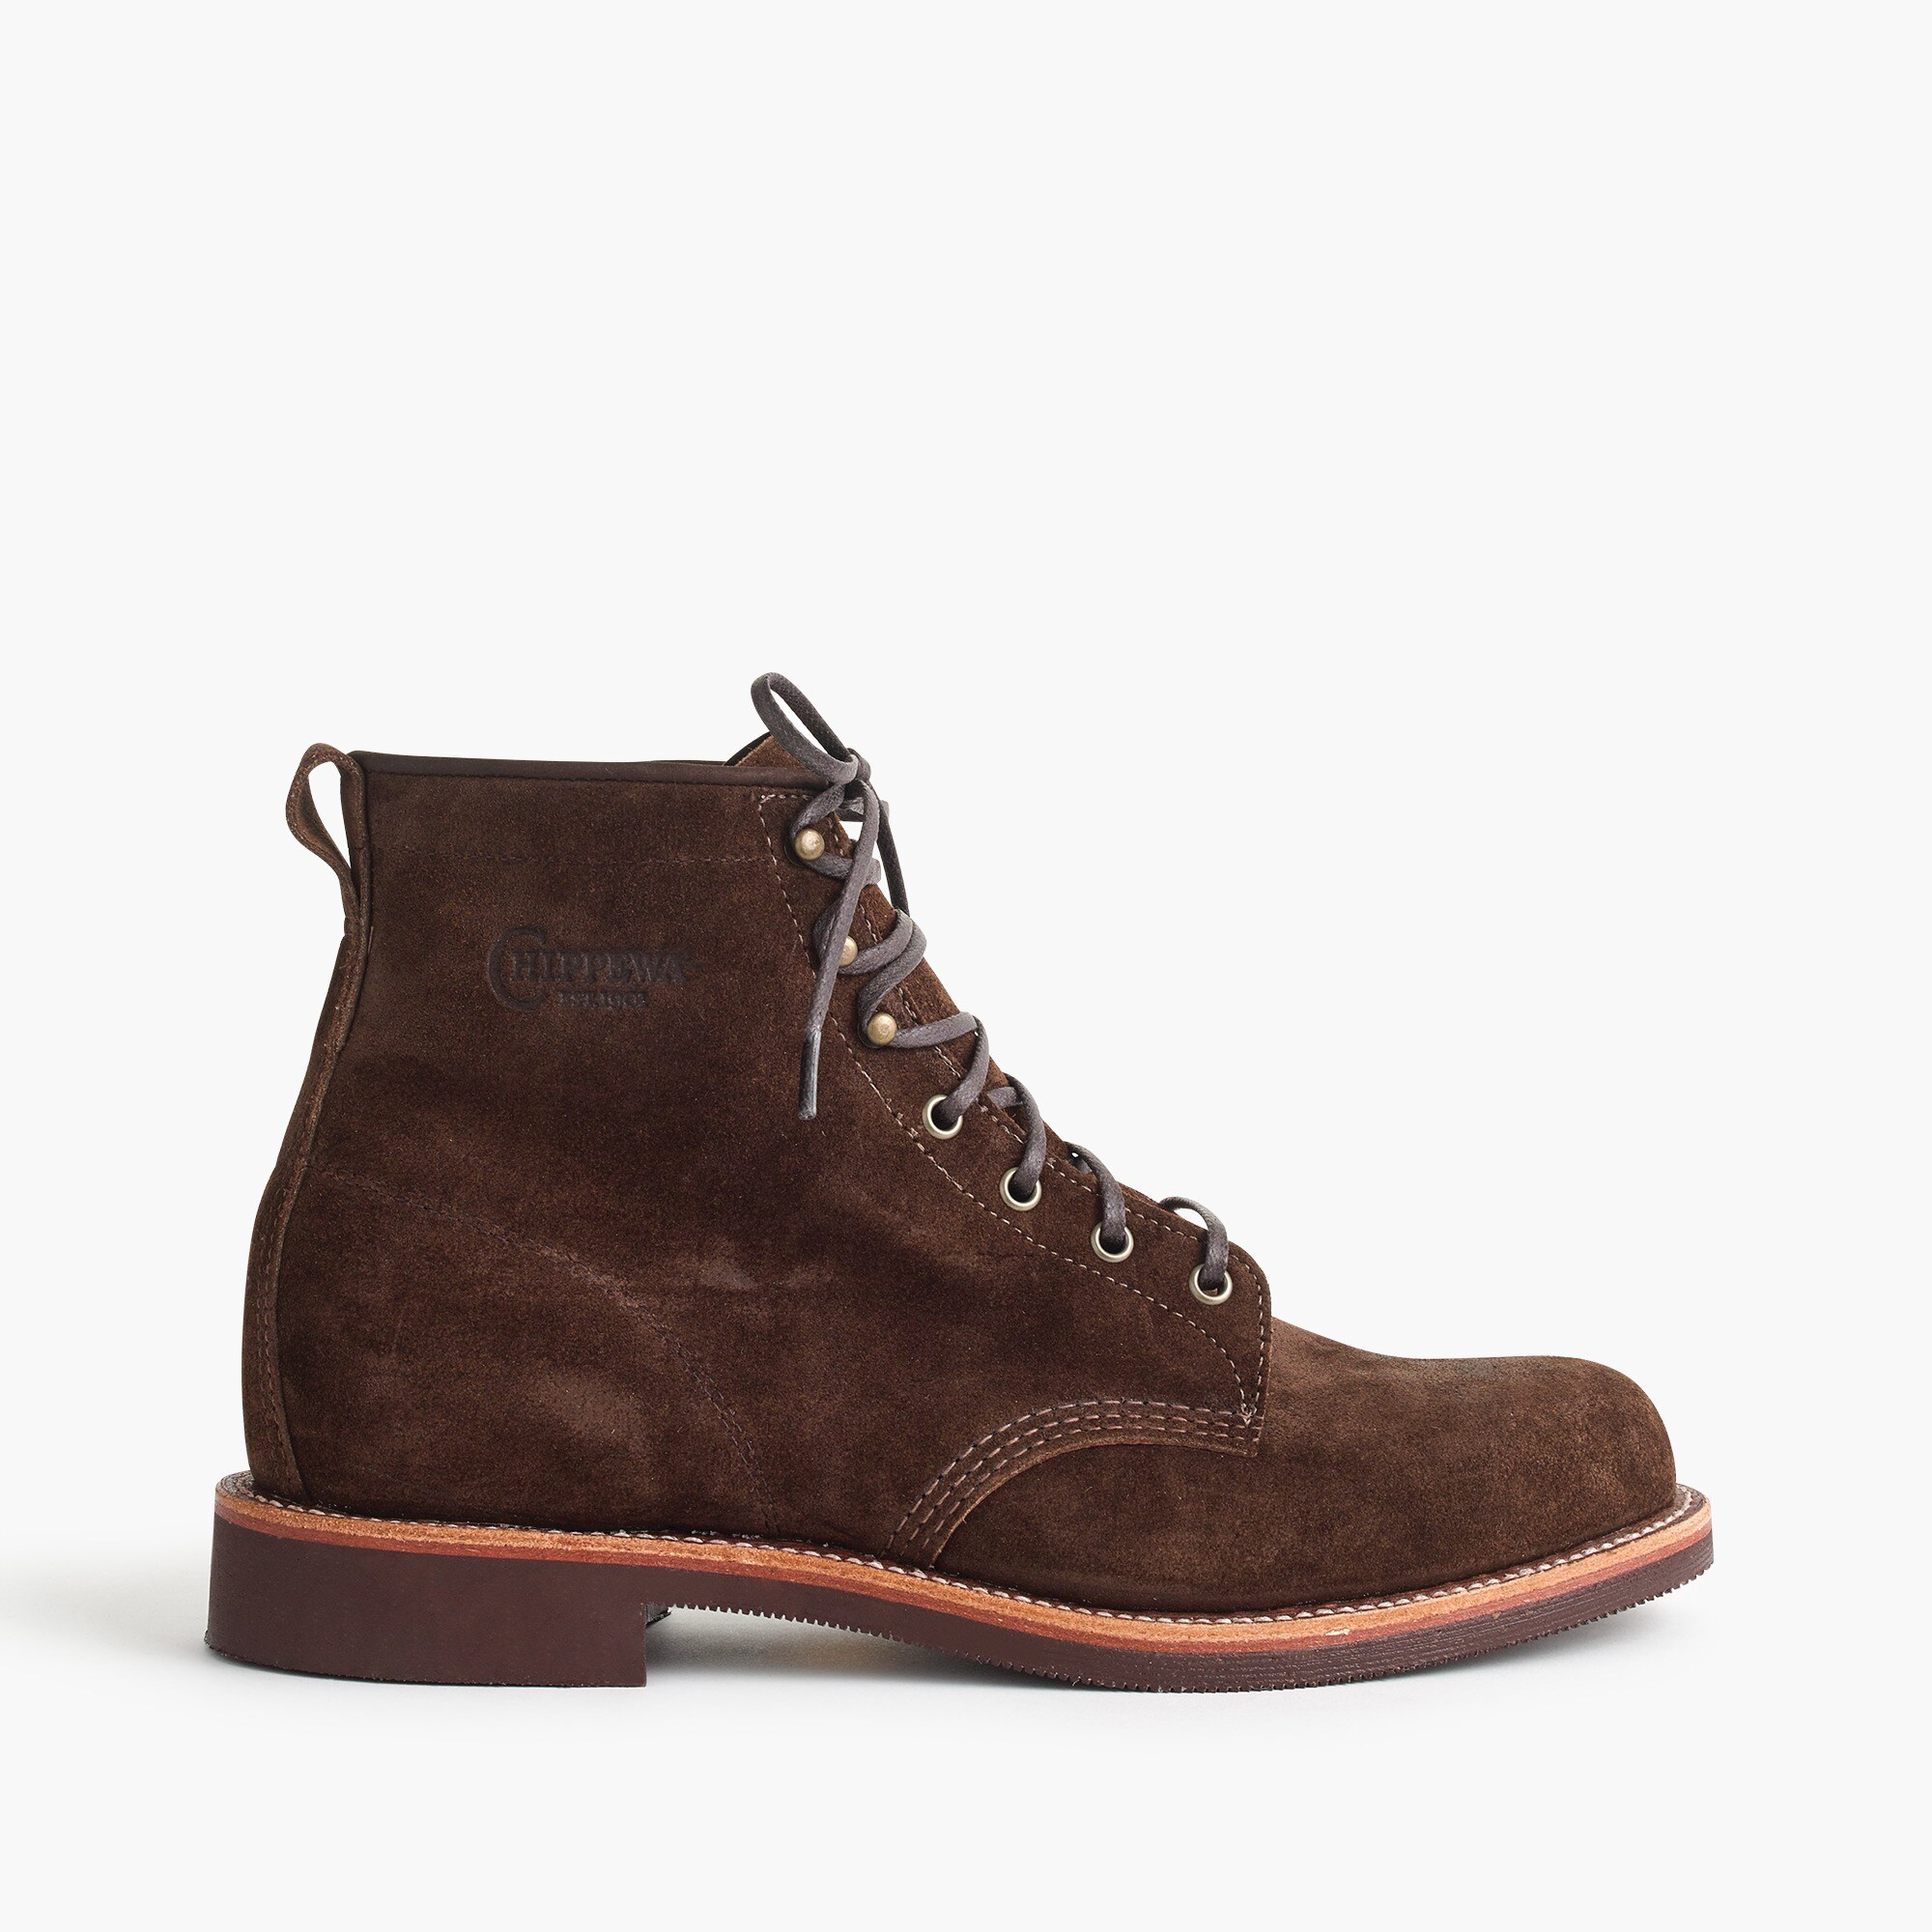 Original Chippewa® for J.Crew rough-out leather boots in chestnut men j.crew in good company c